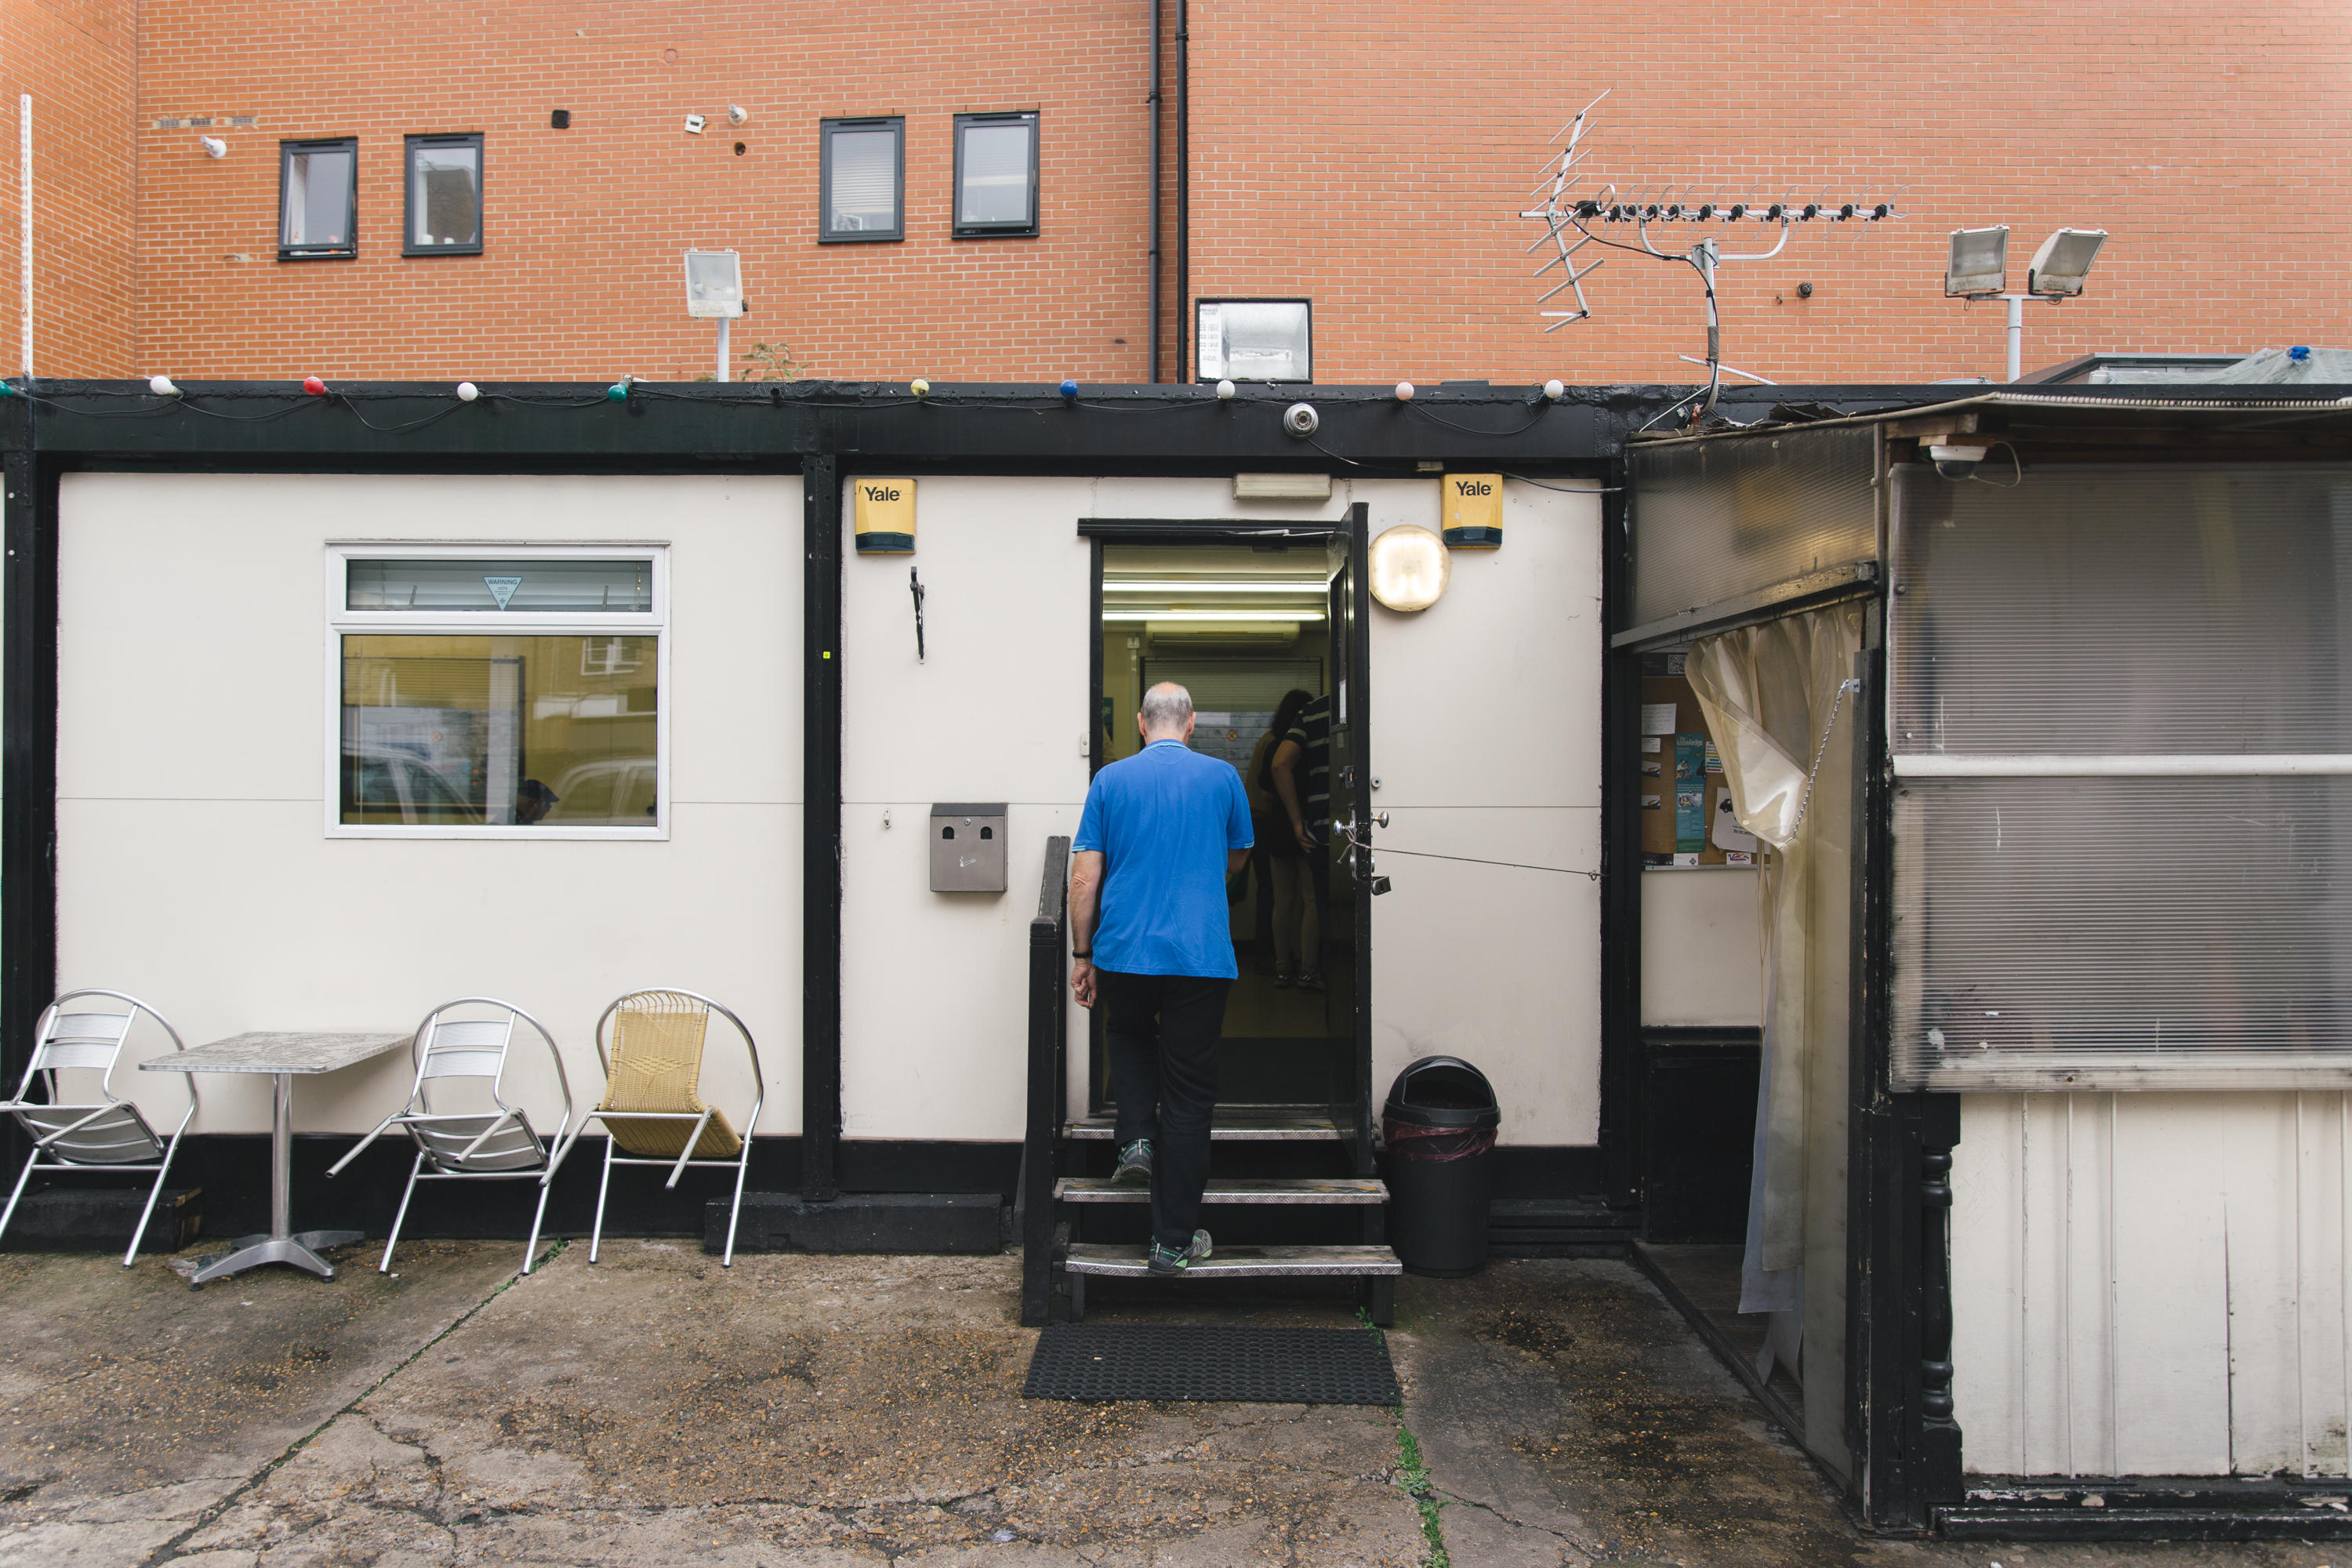 Housed in this static portacabin, the cafe serves as a community hub for the drivers, all of whom seemed to know each other. As we sat and talked with some cabbies, others would regularly call out as familiar faces entered the building.